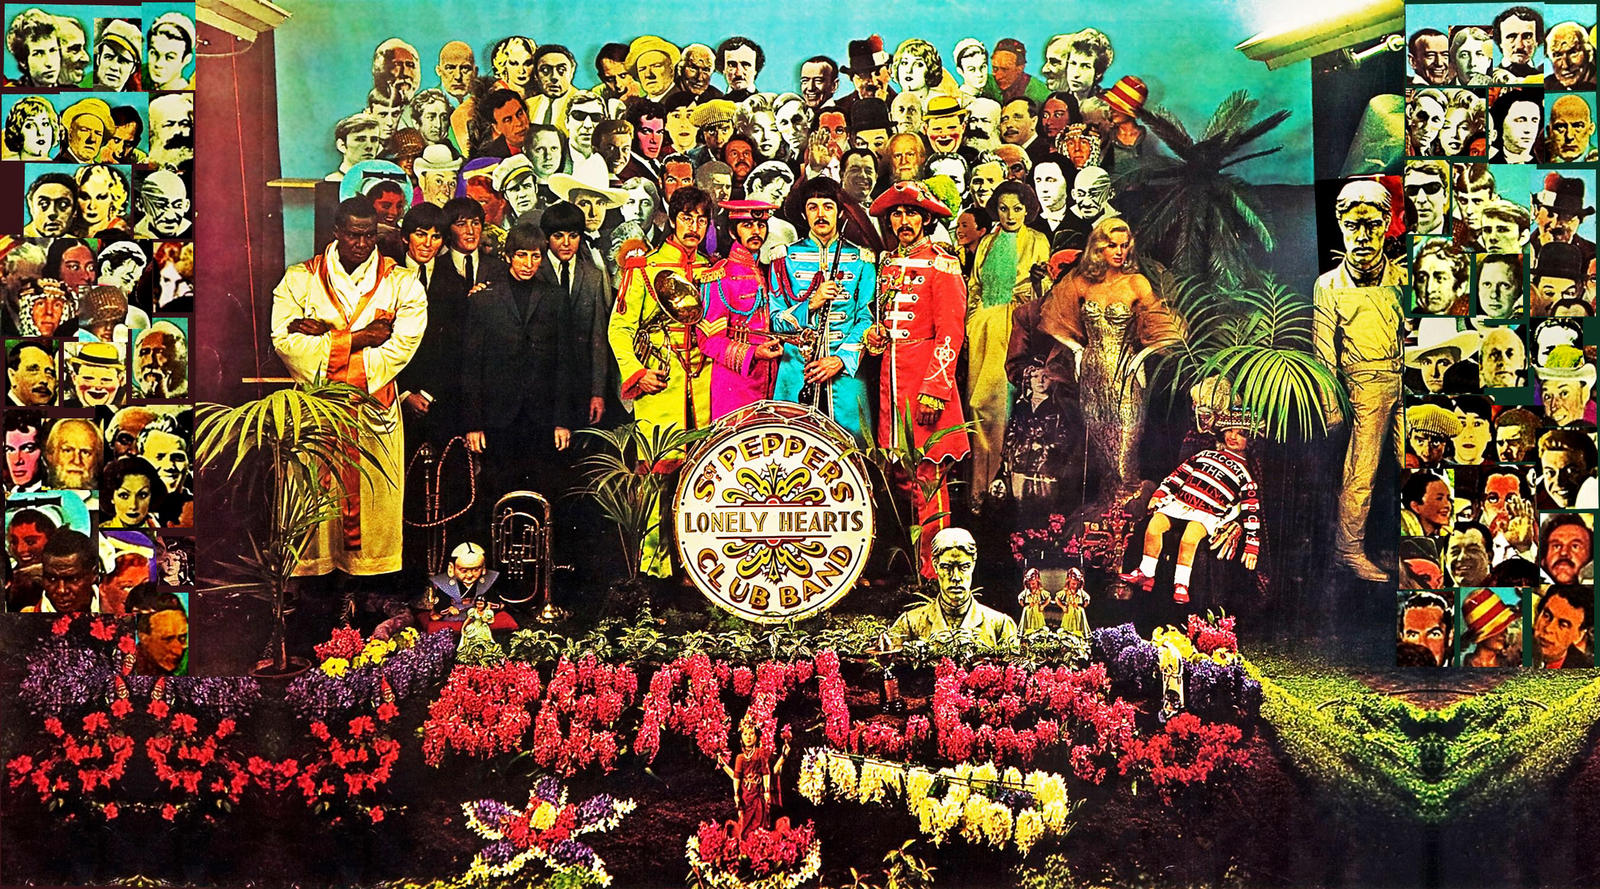 The Beatles / Remixed Sgt. Pepper unveiled at Abbey Road Studios